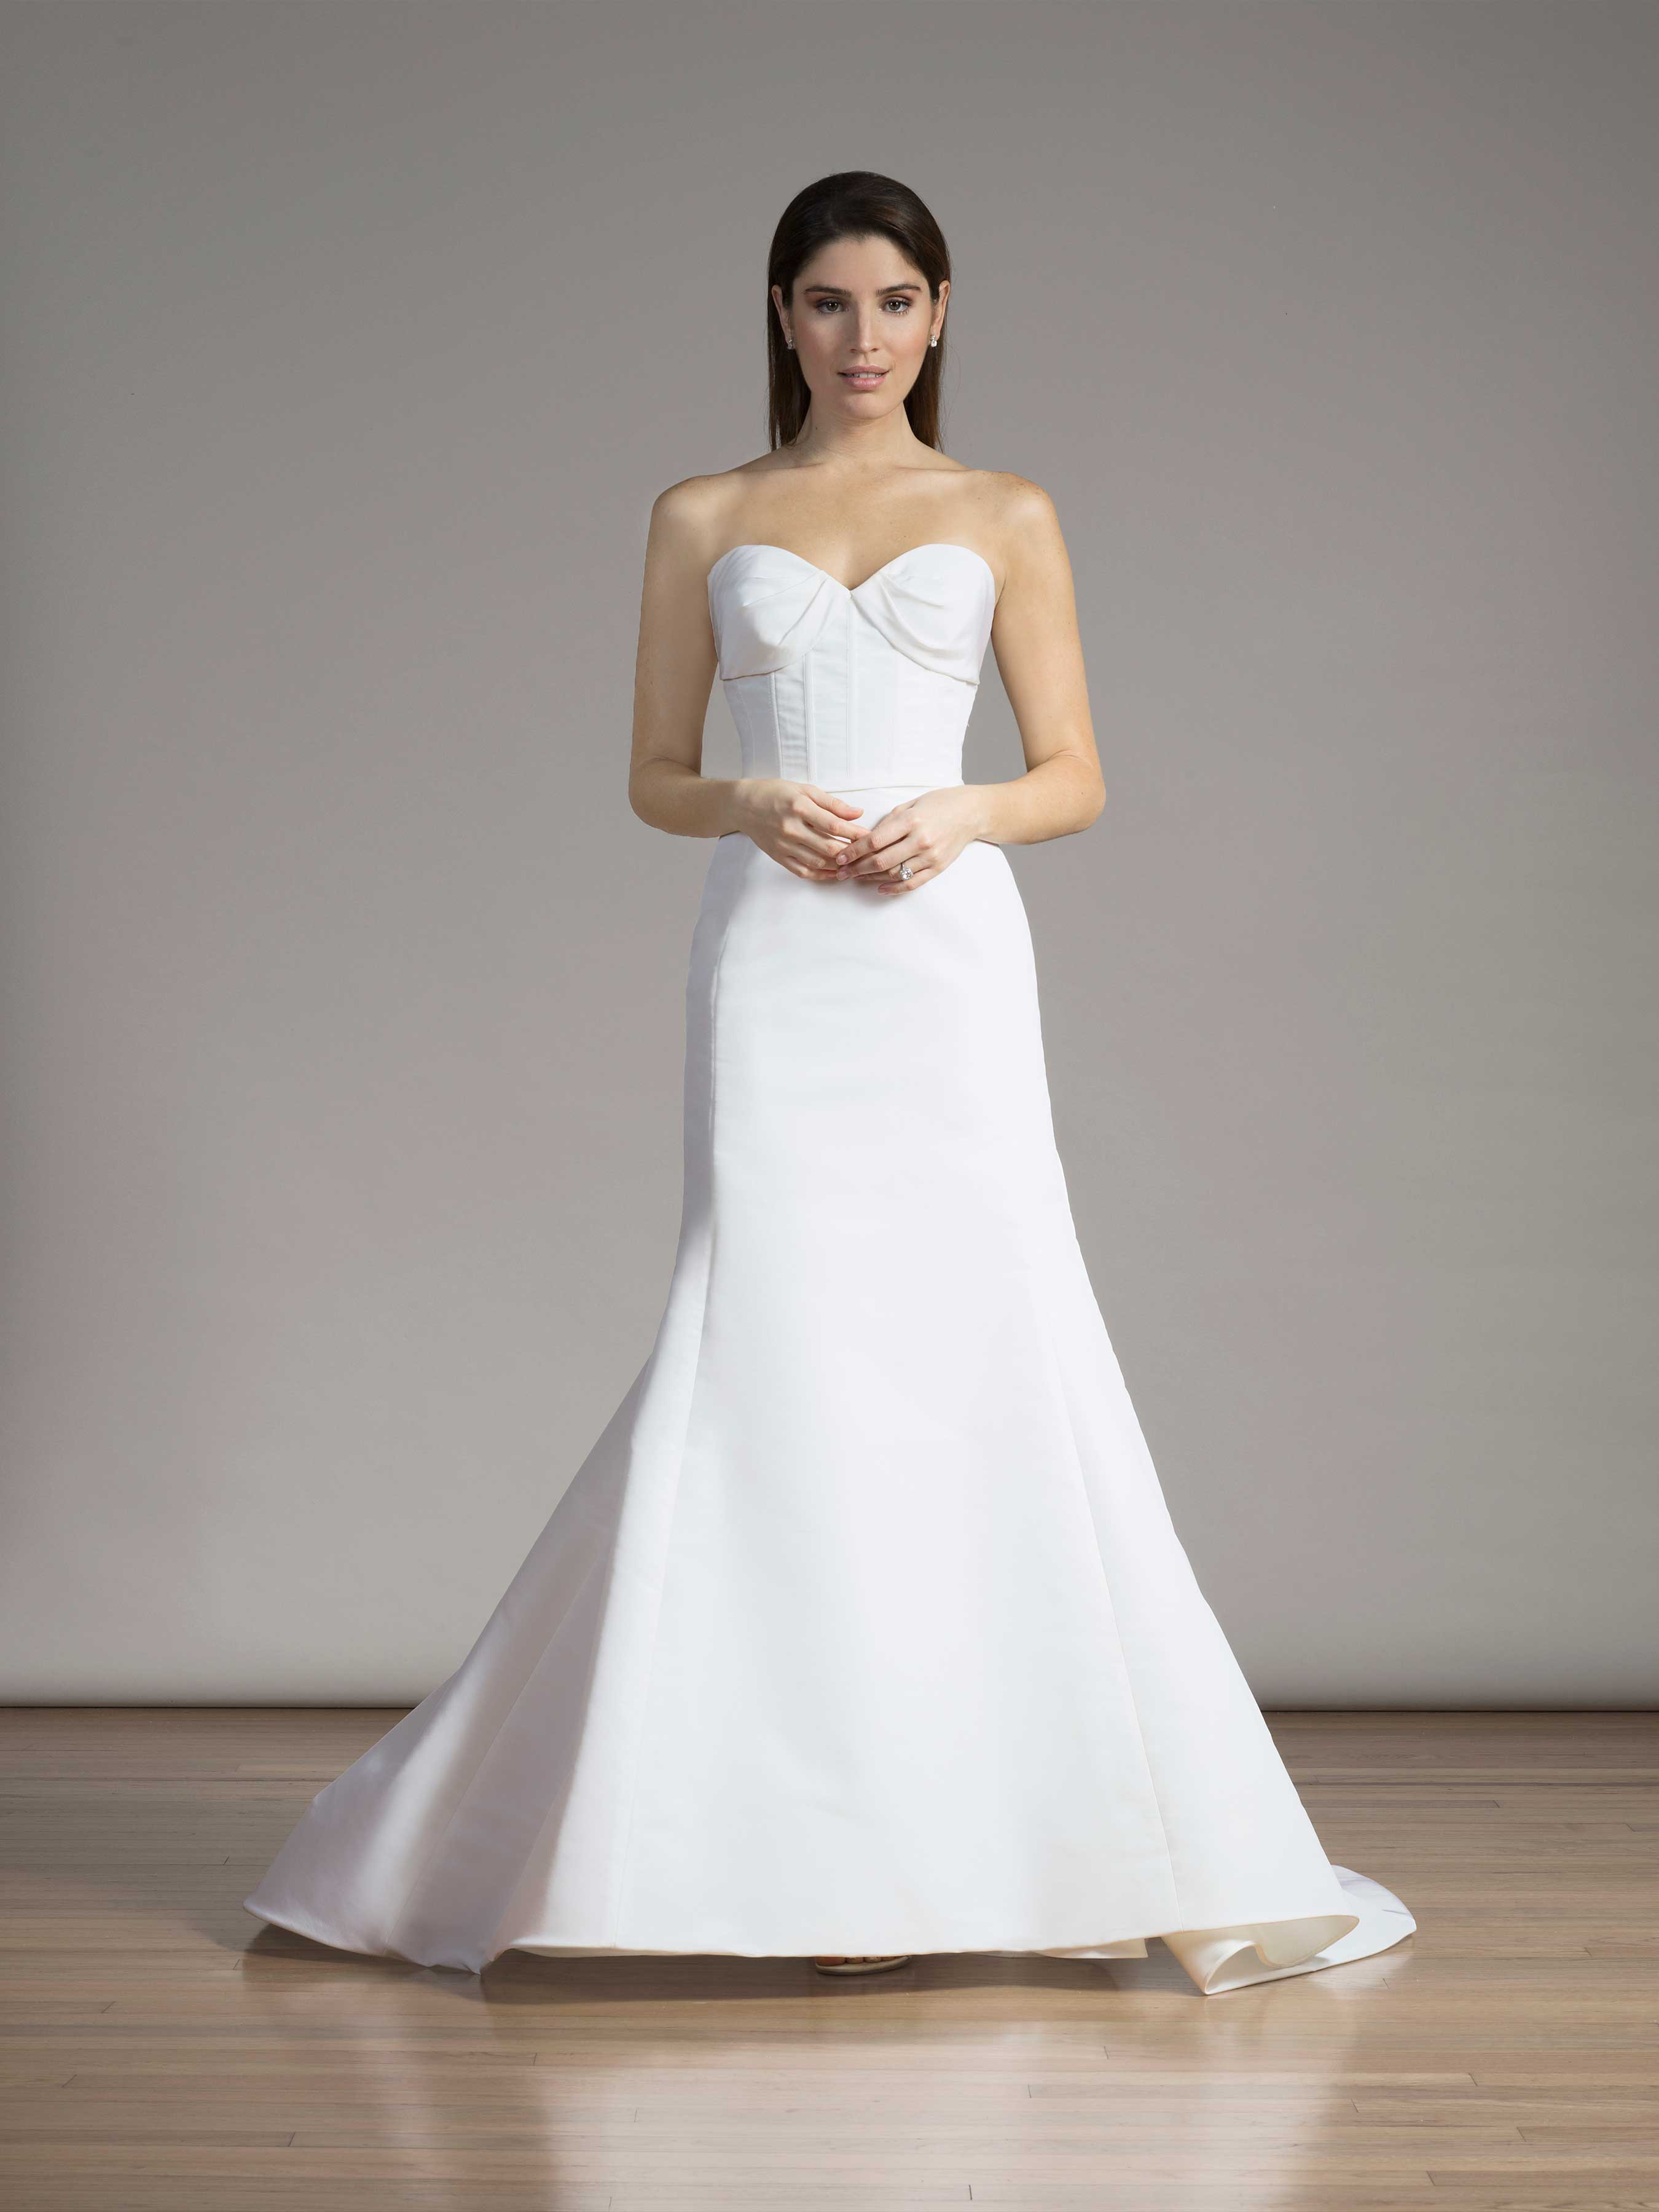 liancarlo structured sweetheart gown, regina king inspiration